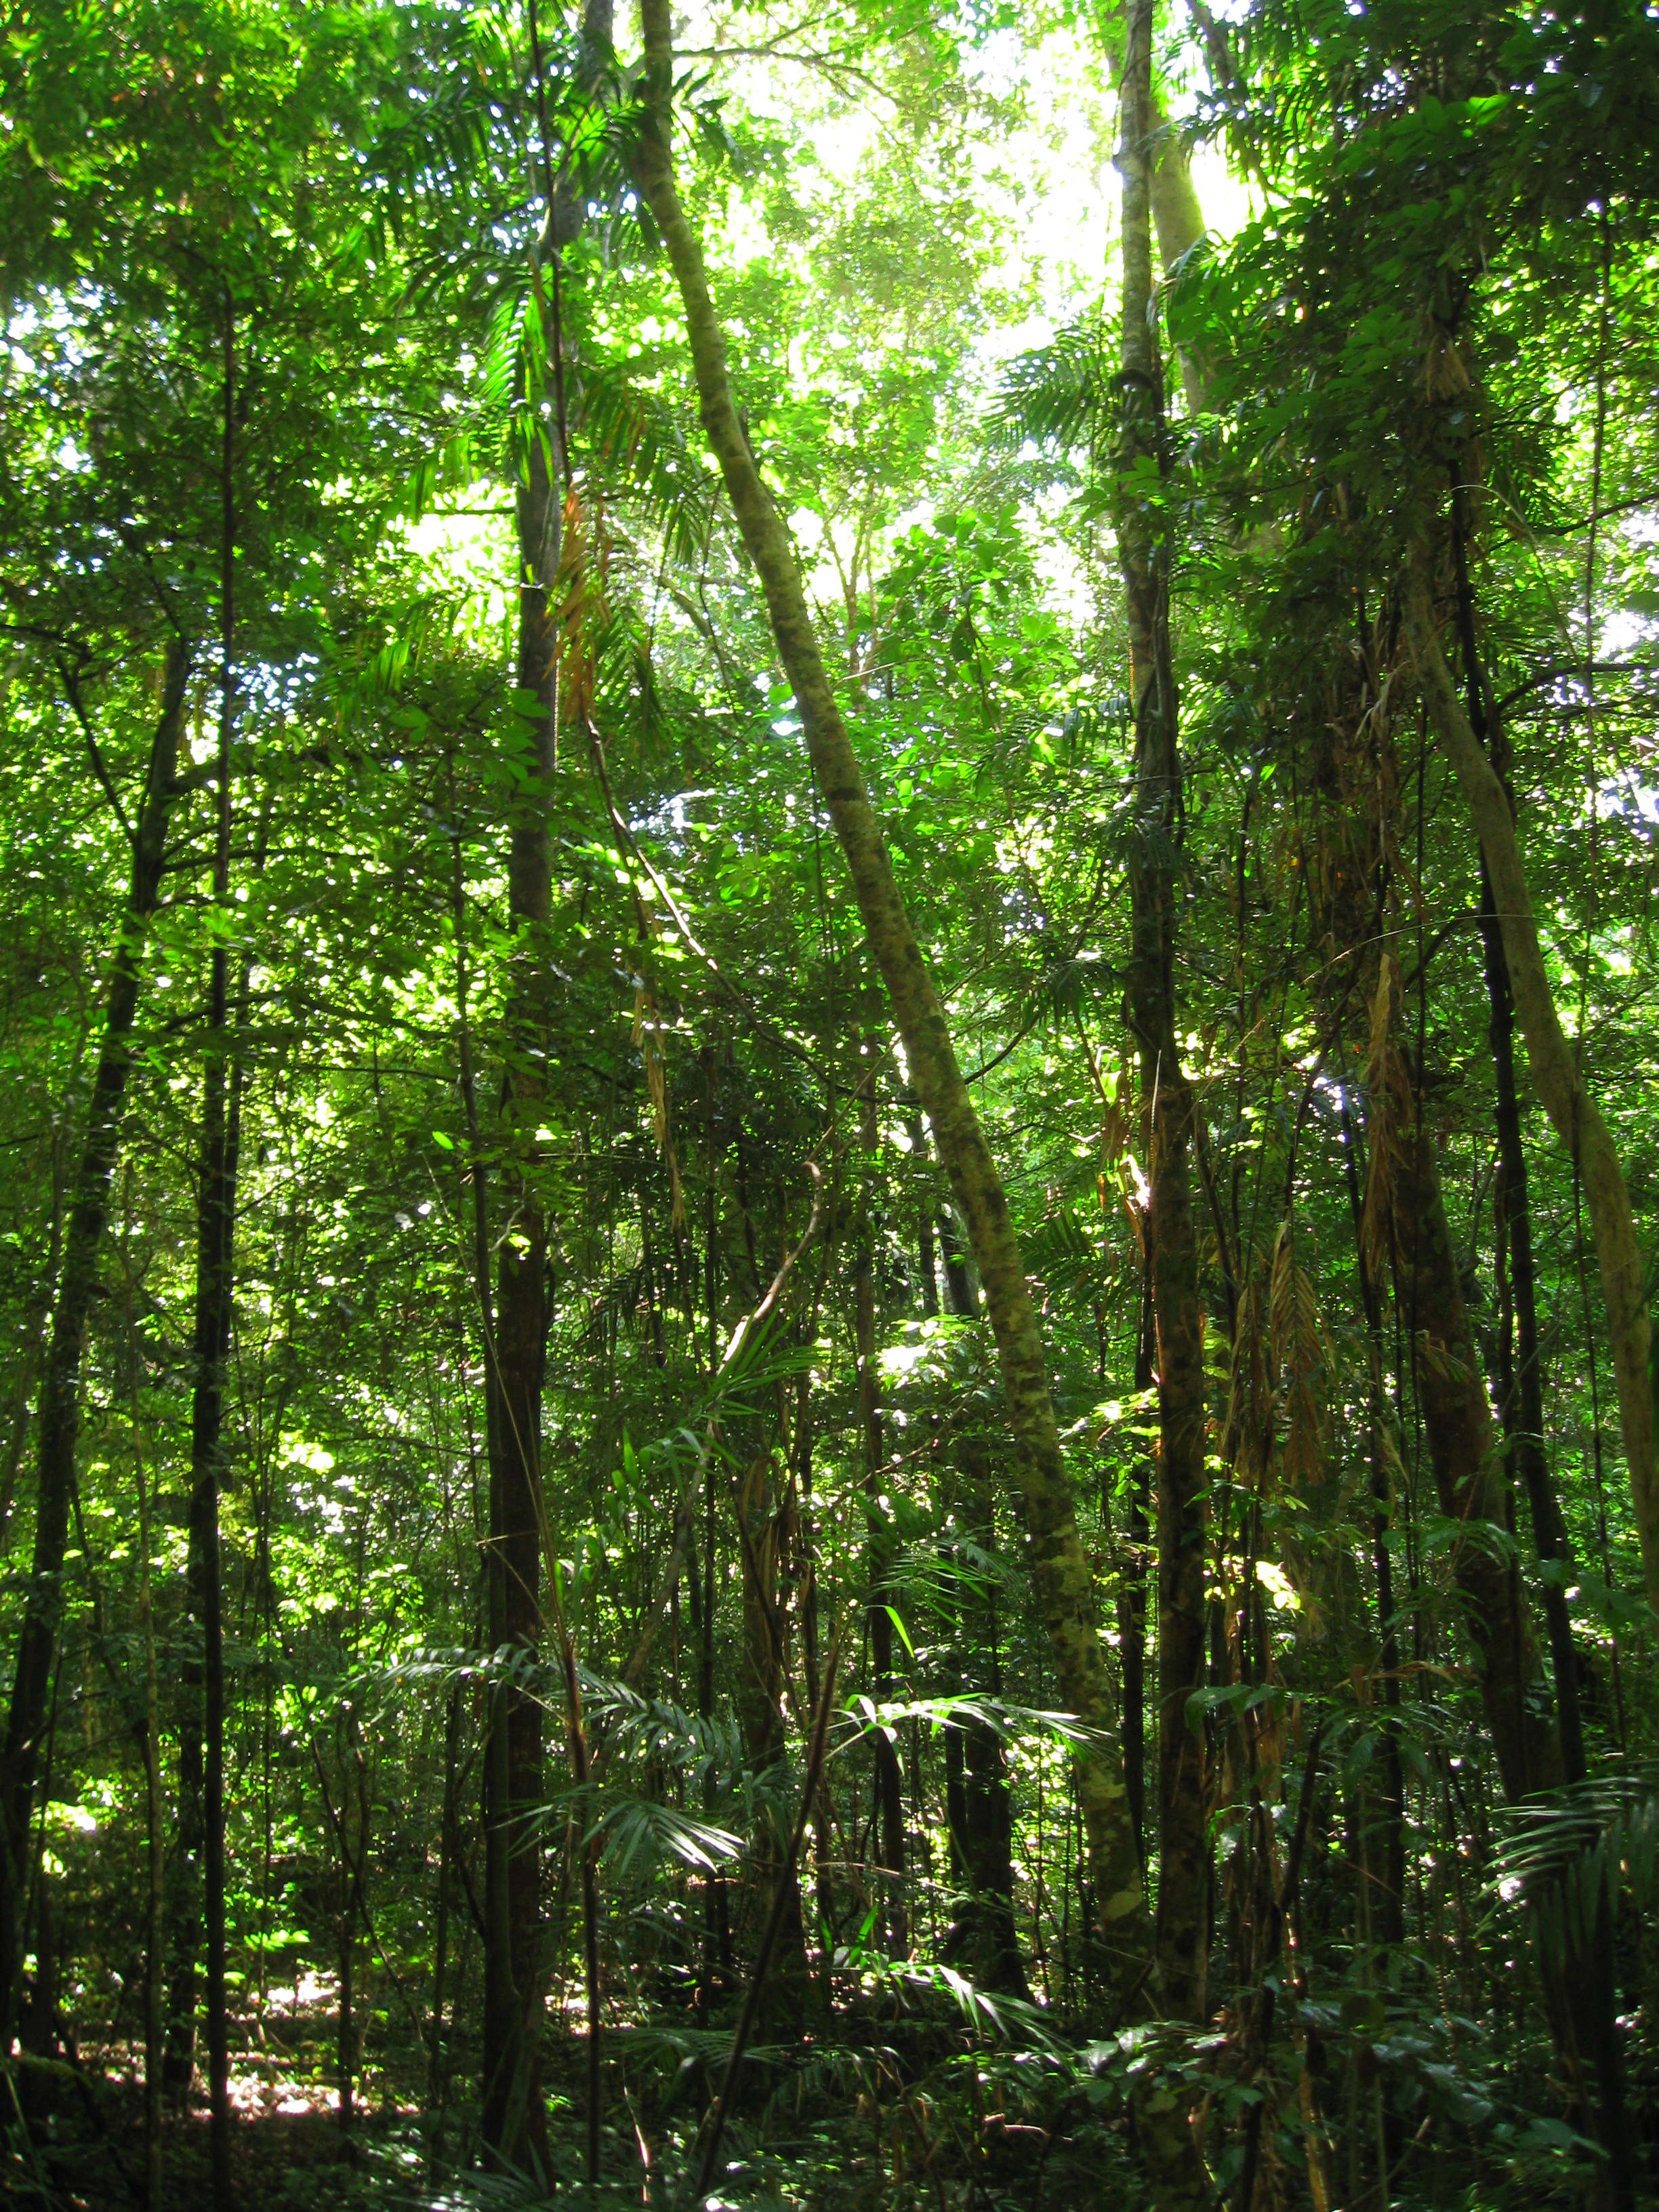 An Essay On The Flora And Fauna Of The Daintree Forest